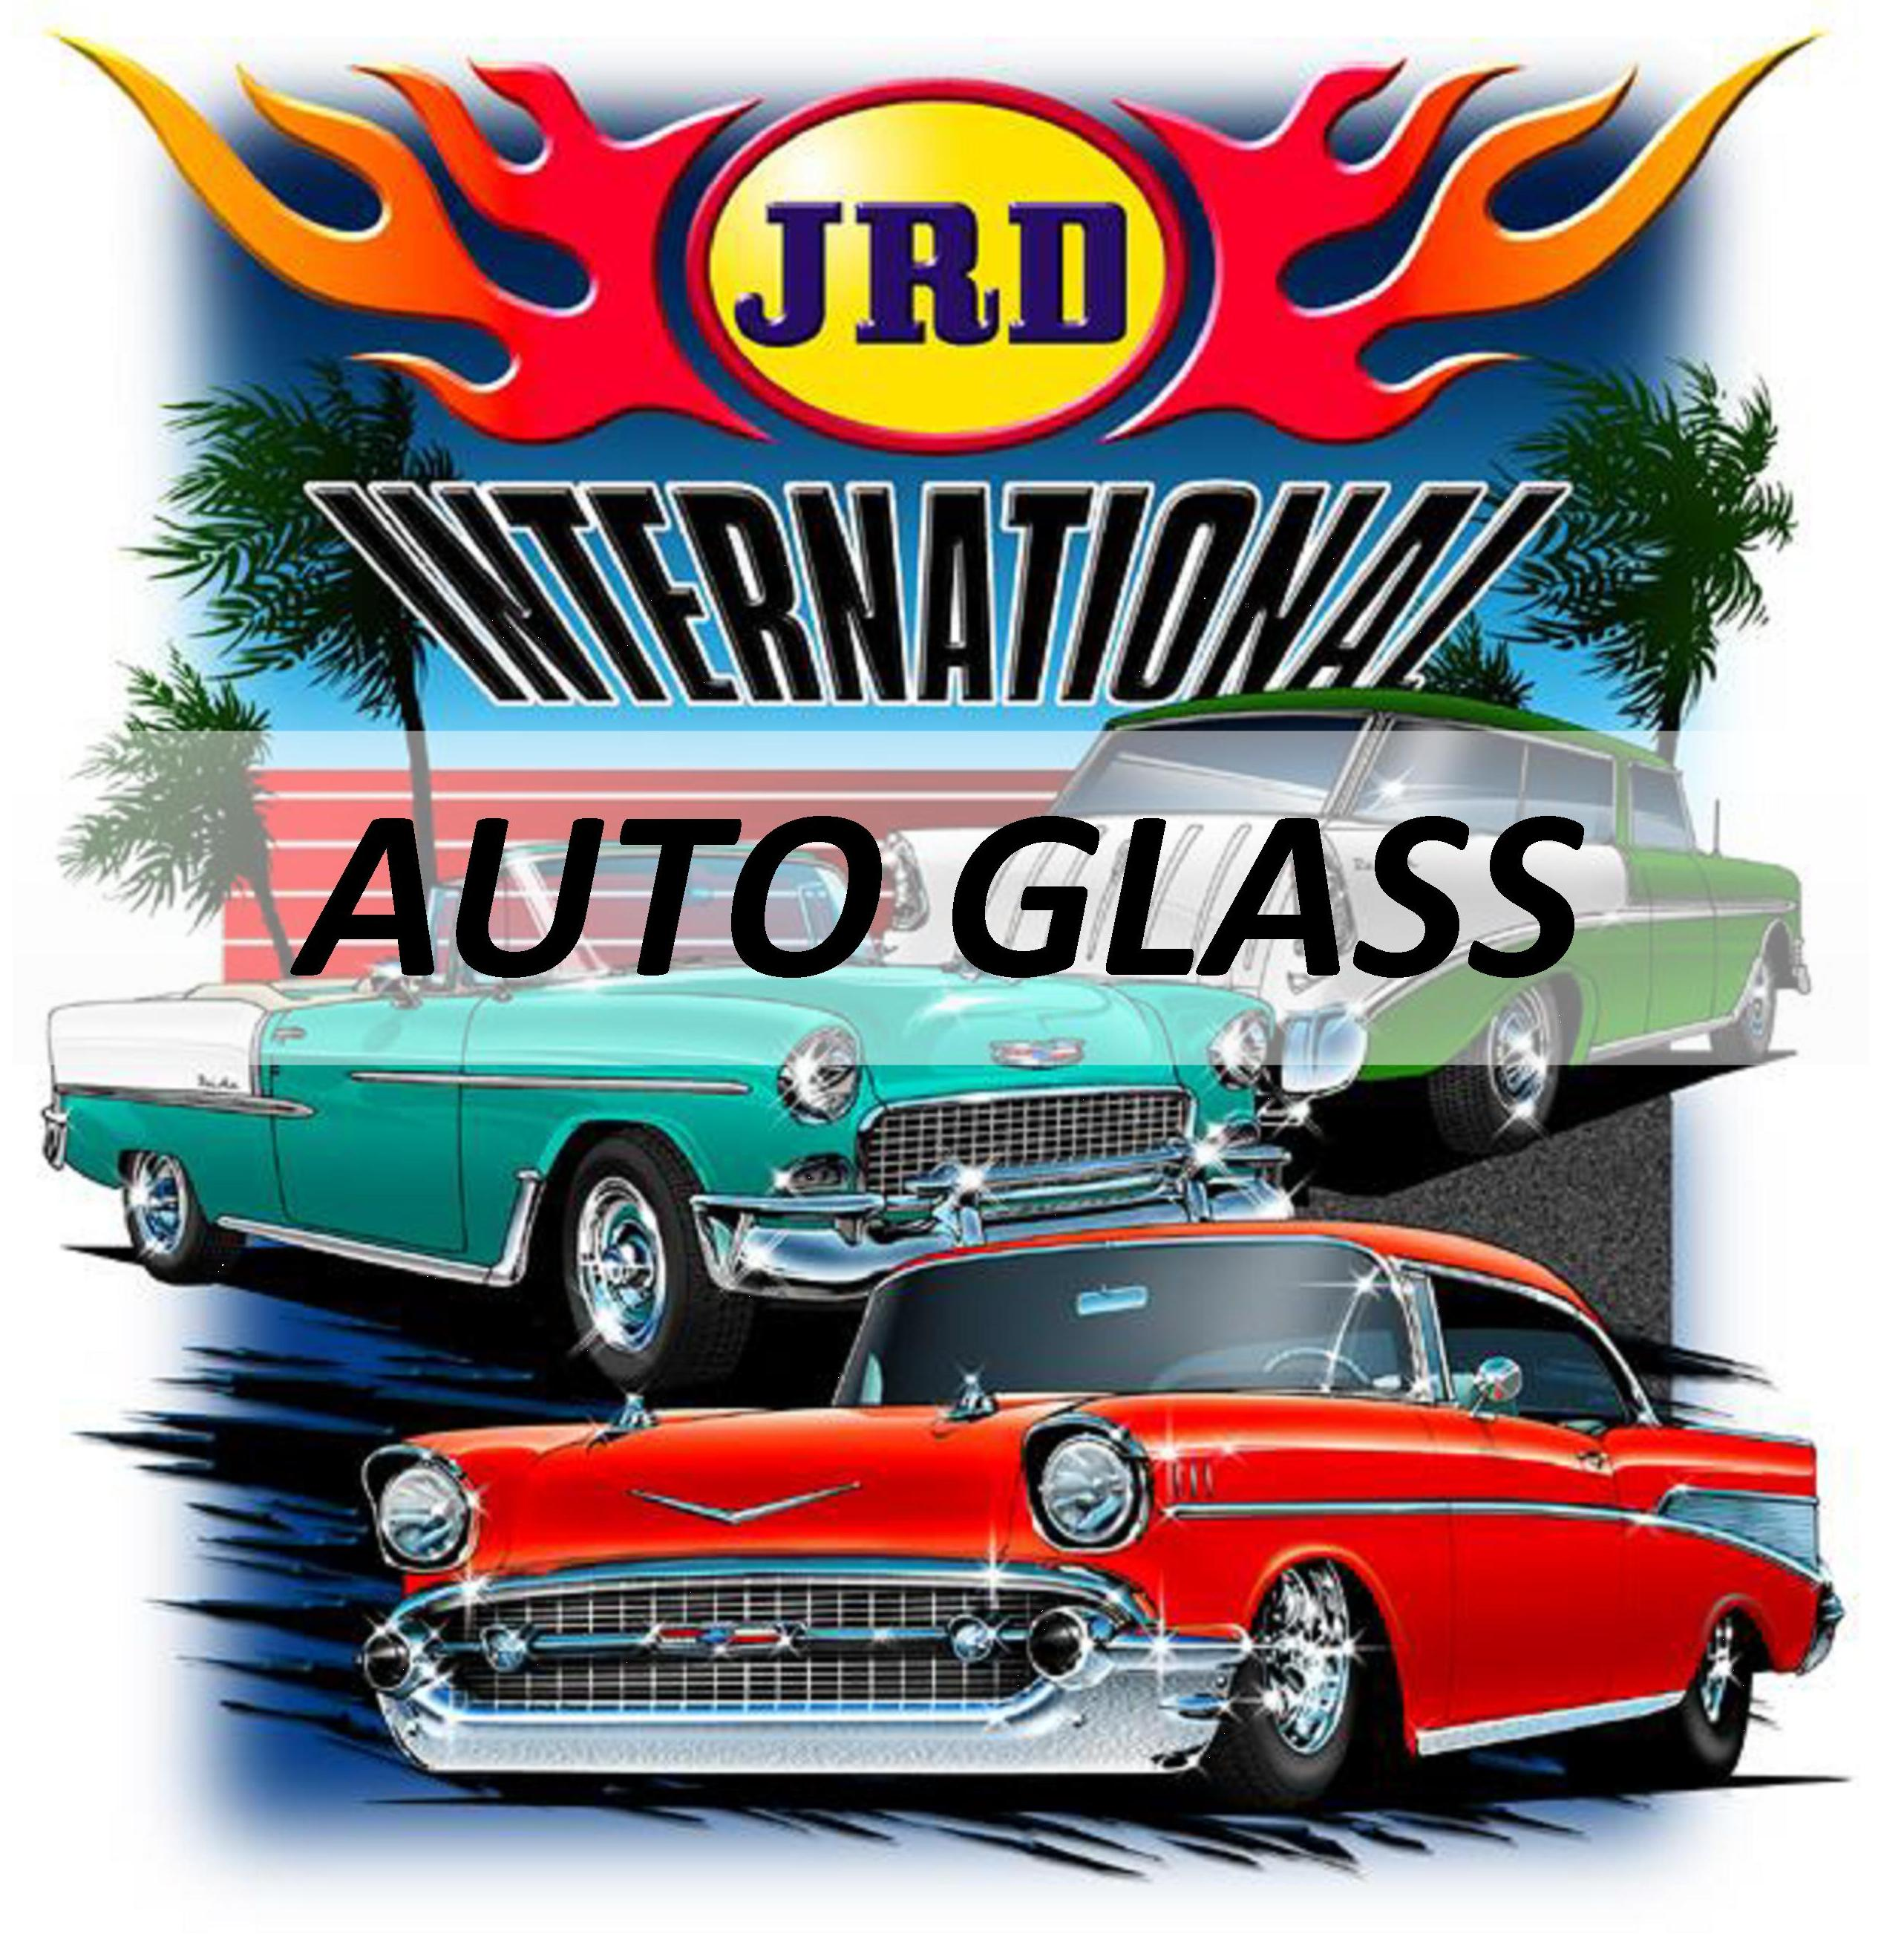 jrd-international-auto-glass-logo-2016.jpg